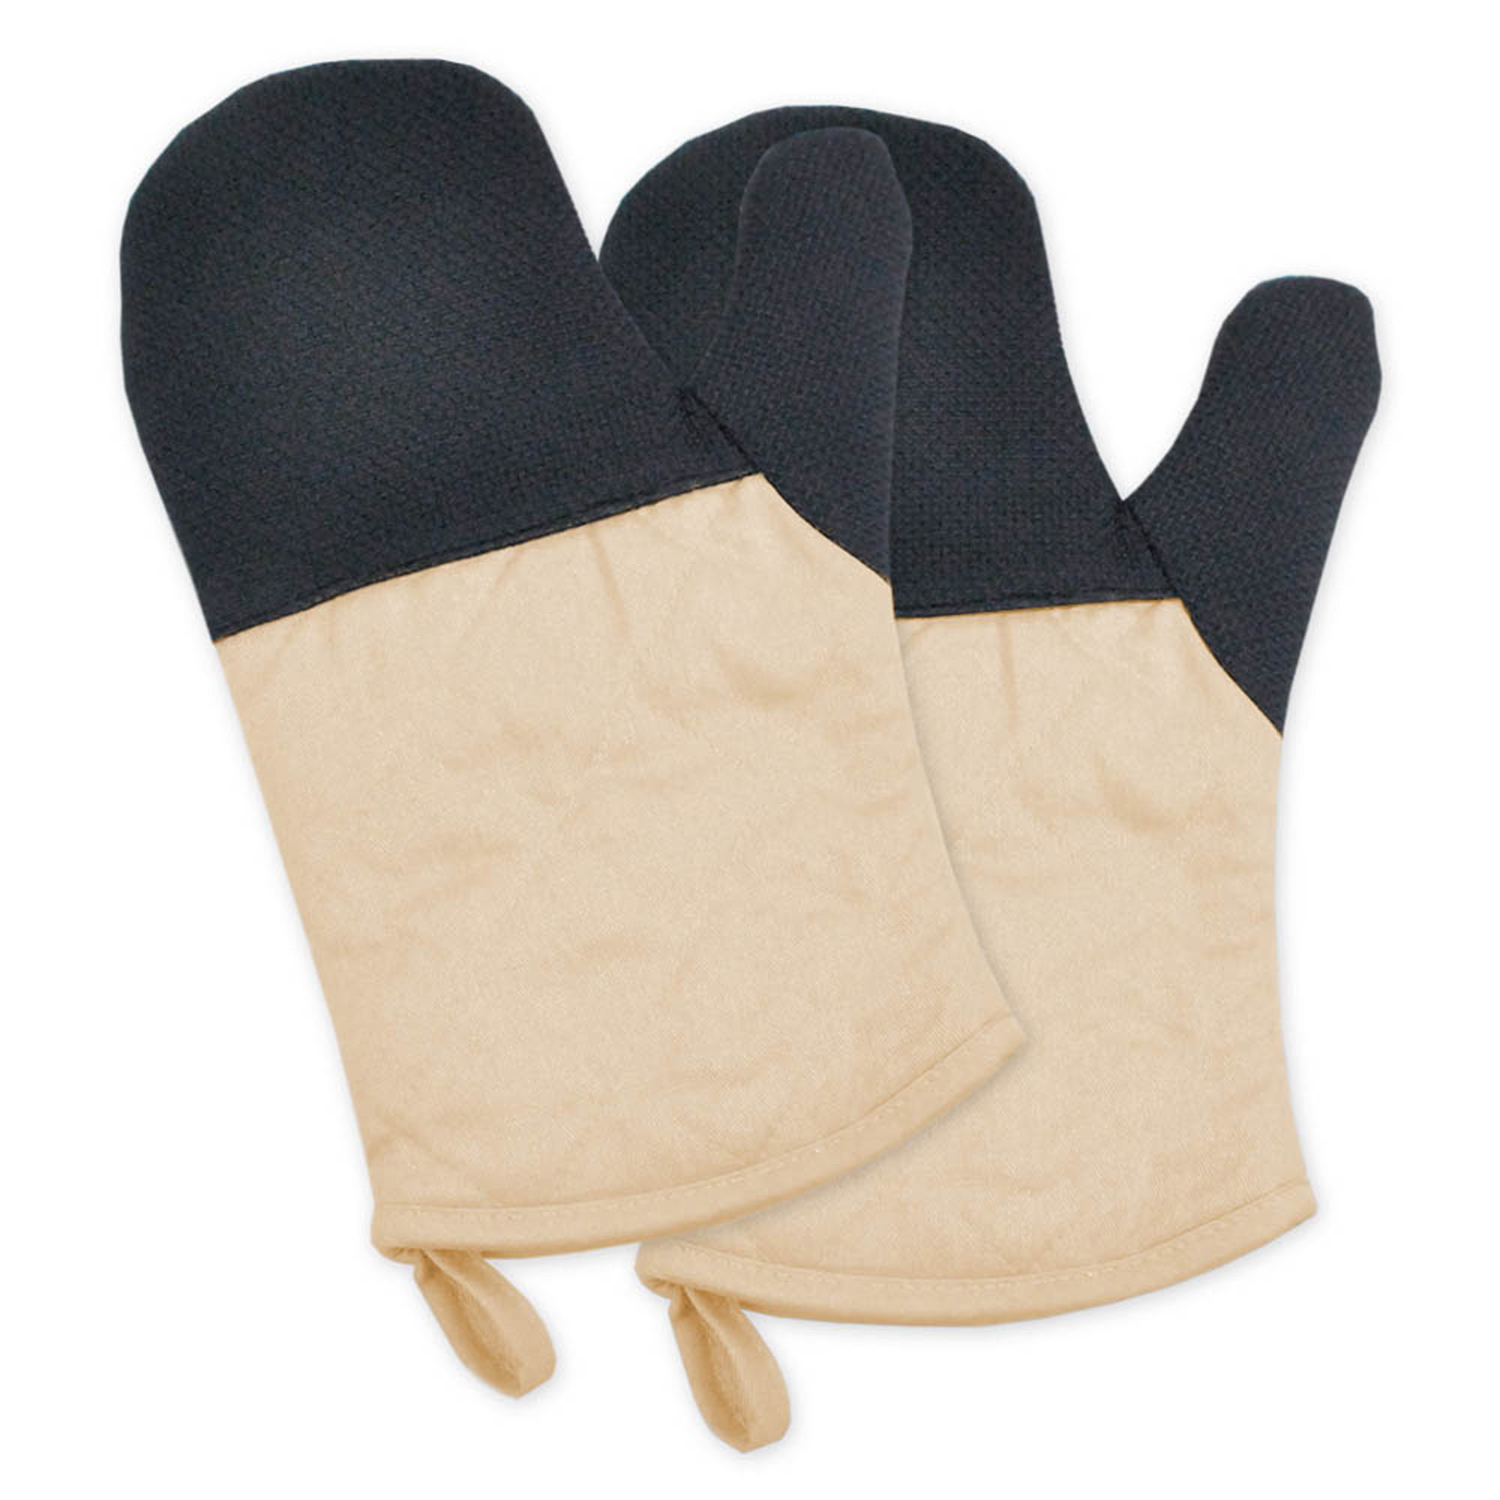 Two-Toned Sand Heat Resistant Oven Mitt Set of 2